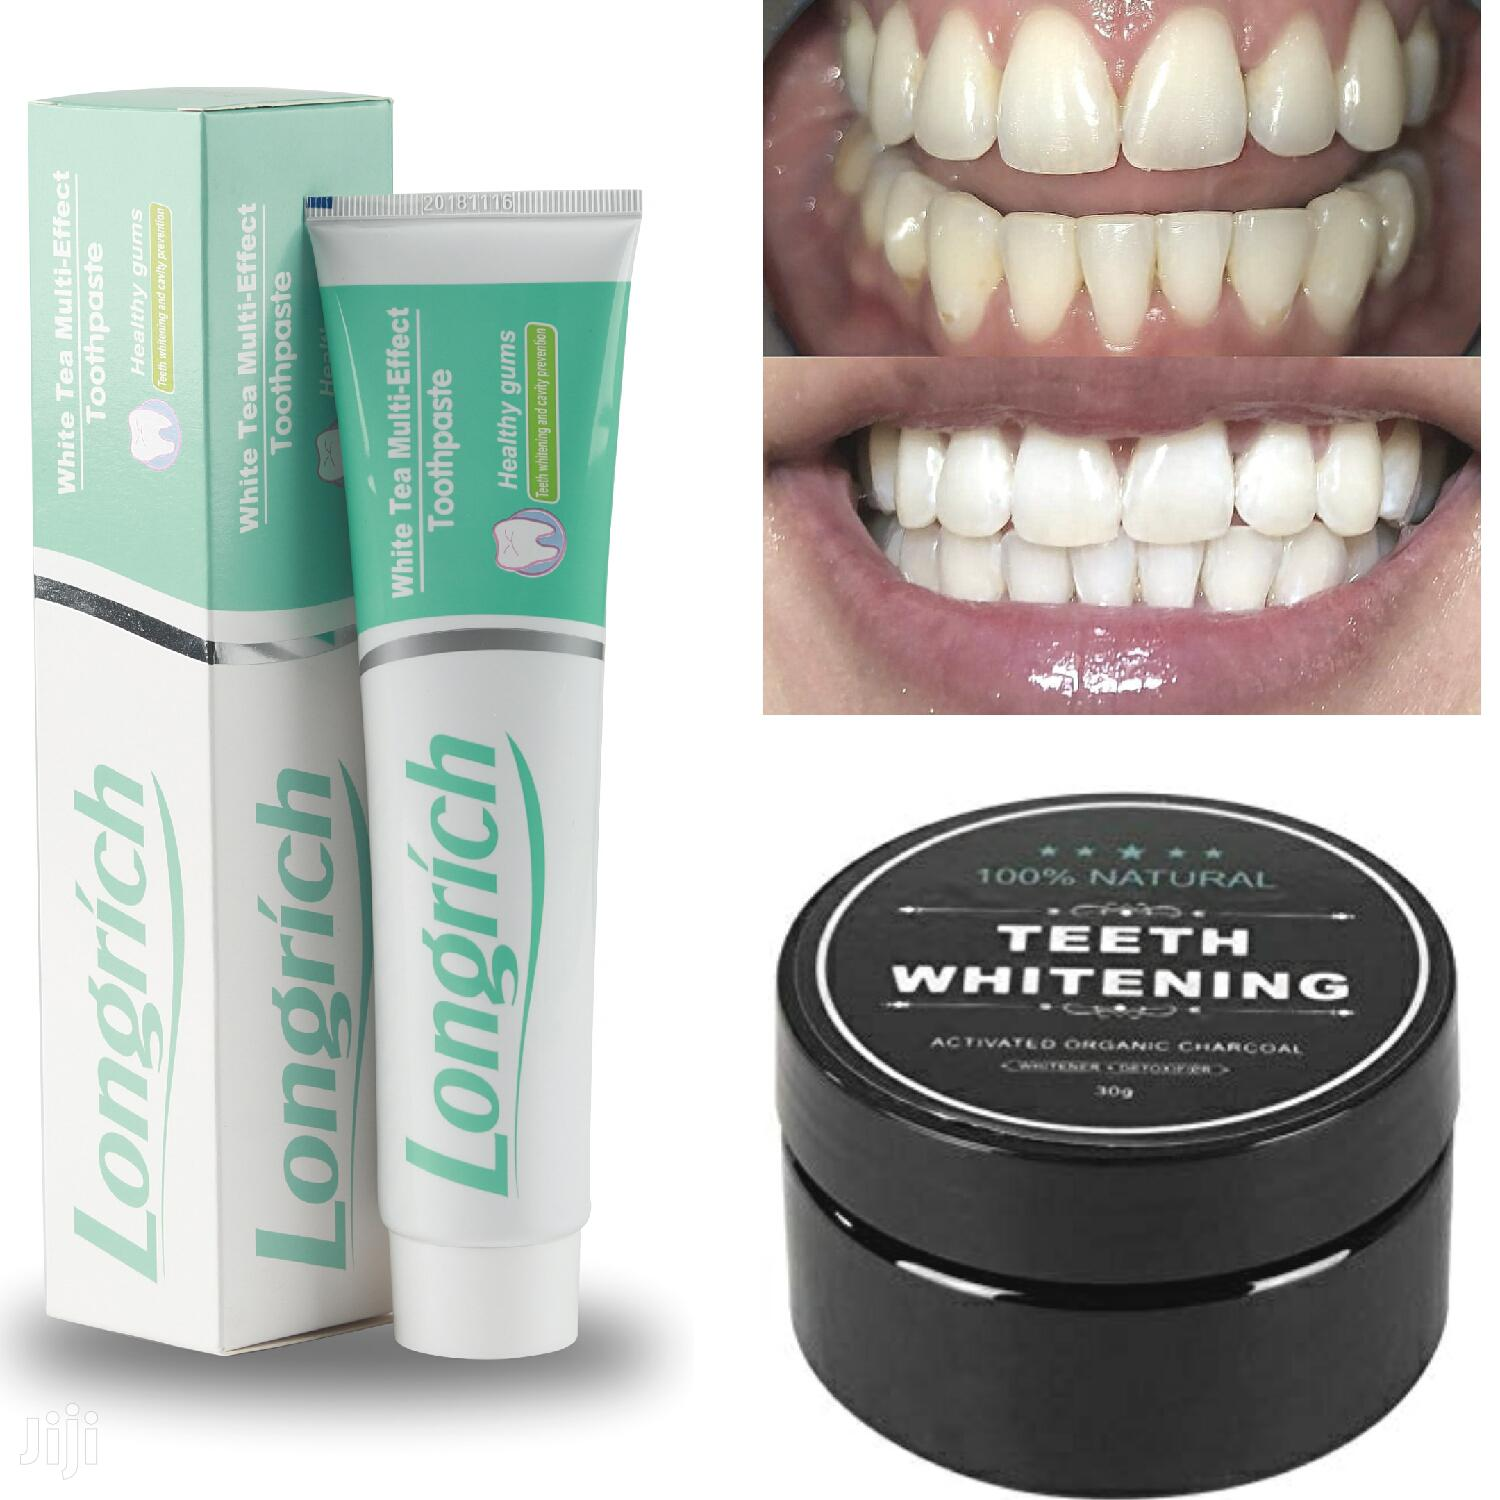 Activated Charcoal Teeth Whitening and Flouride-Free Toothpaste Combo